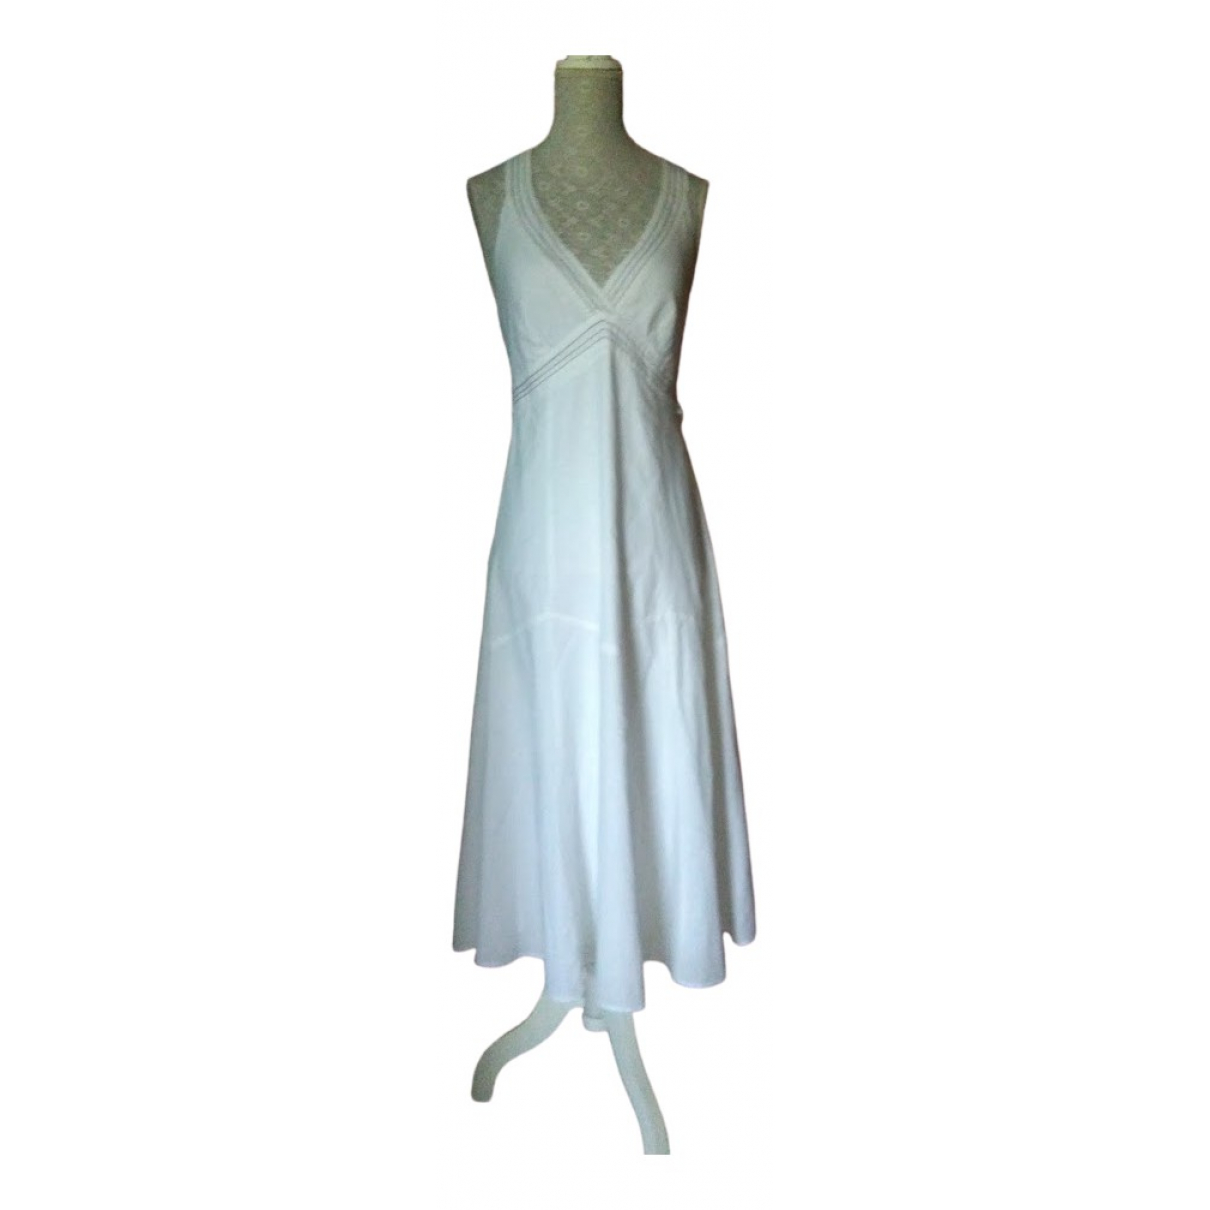 Zara \N White Cotton dress for Women 44 IT